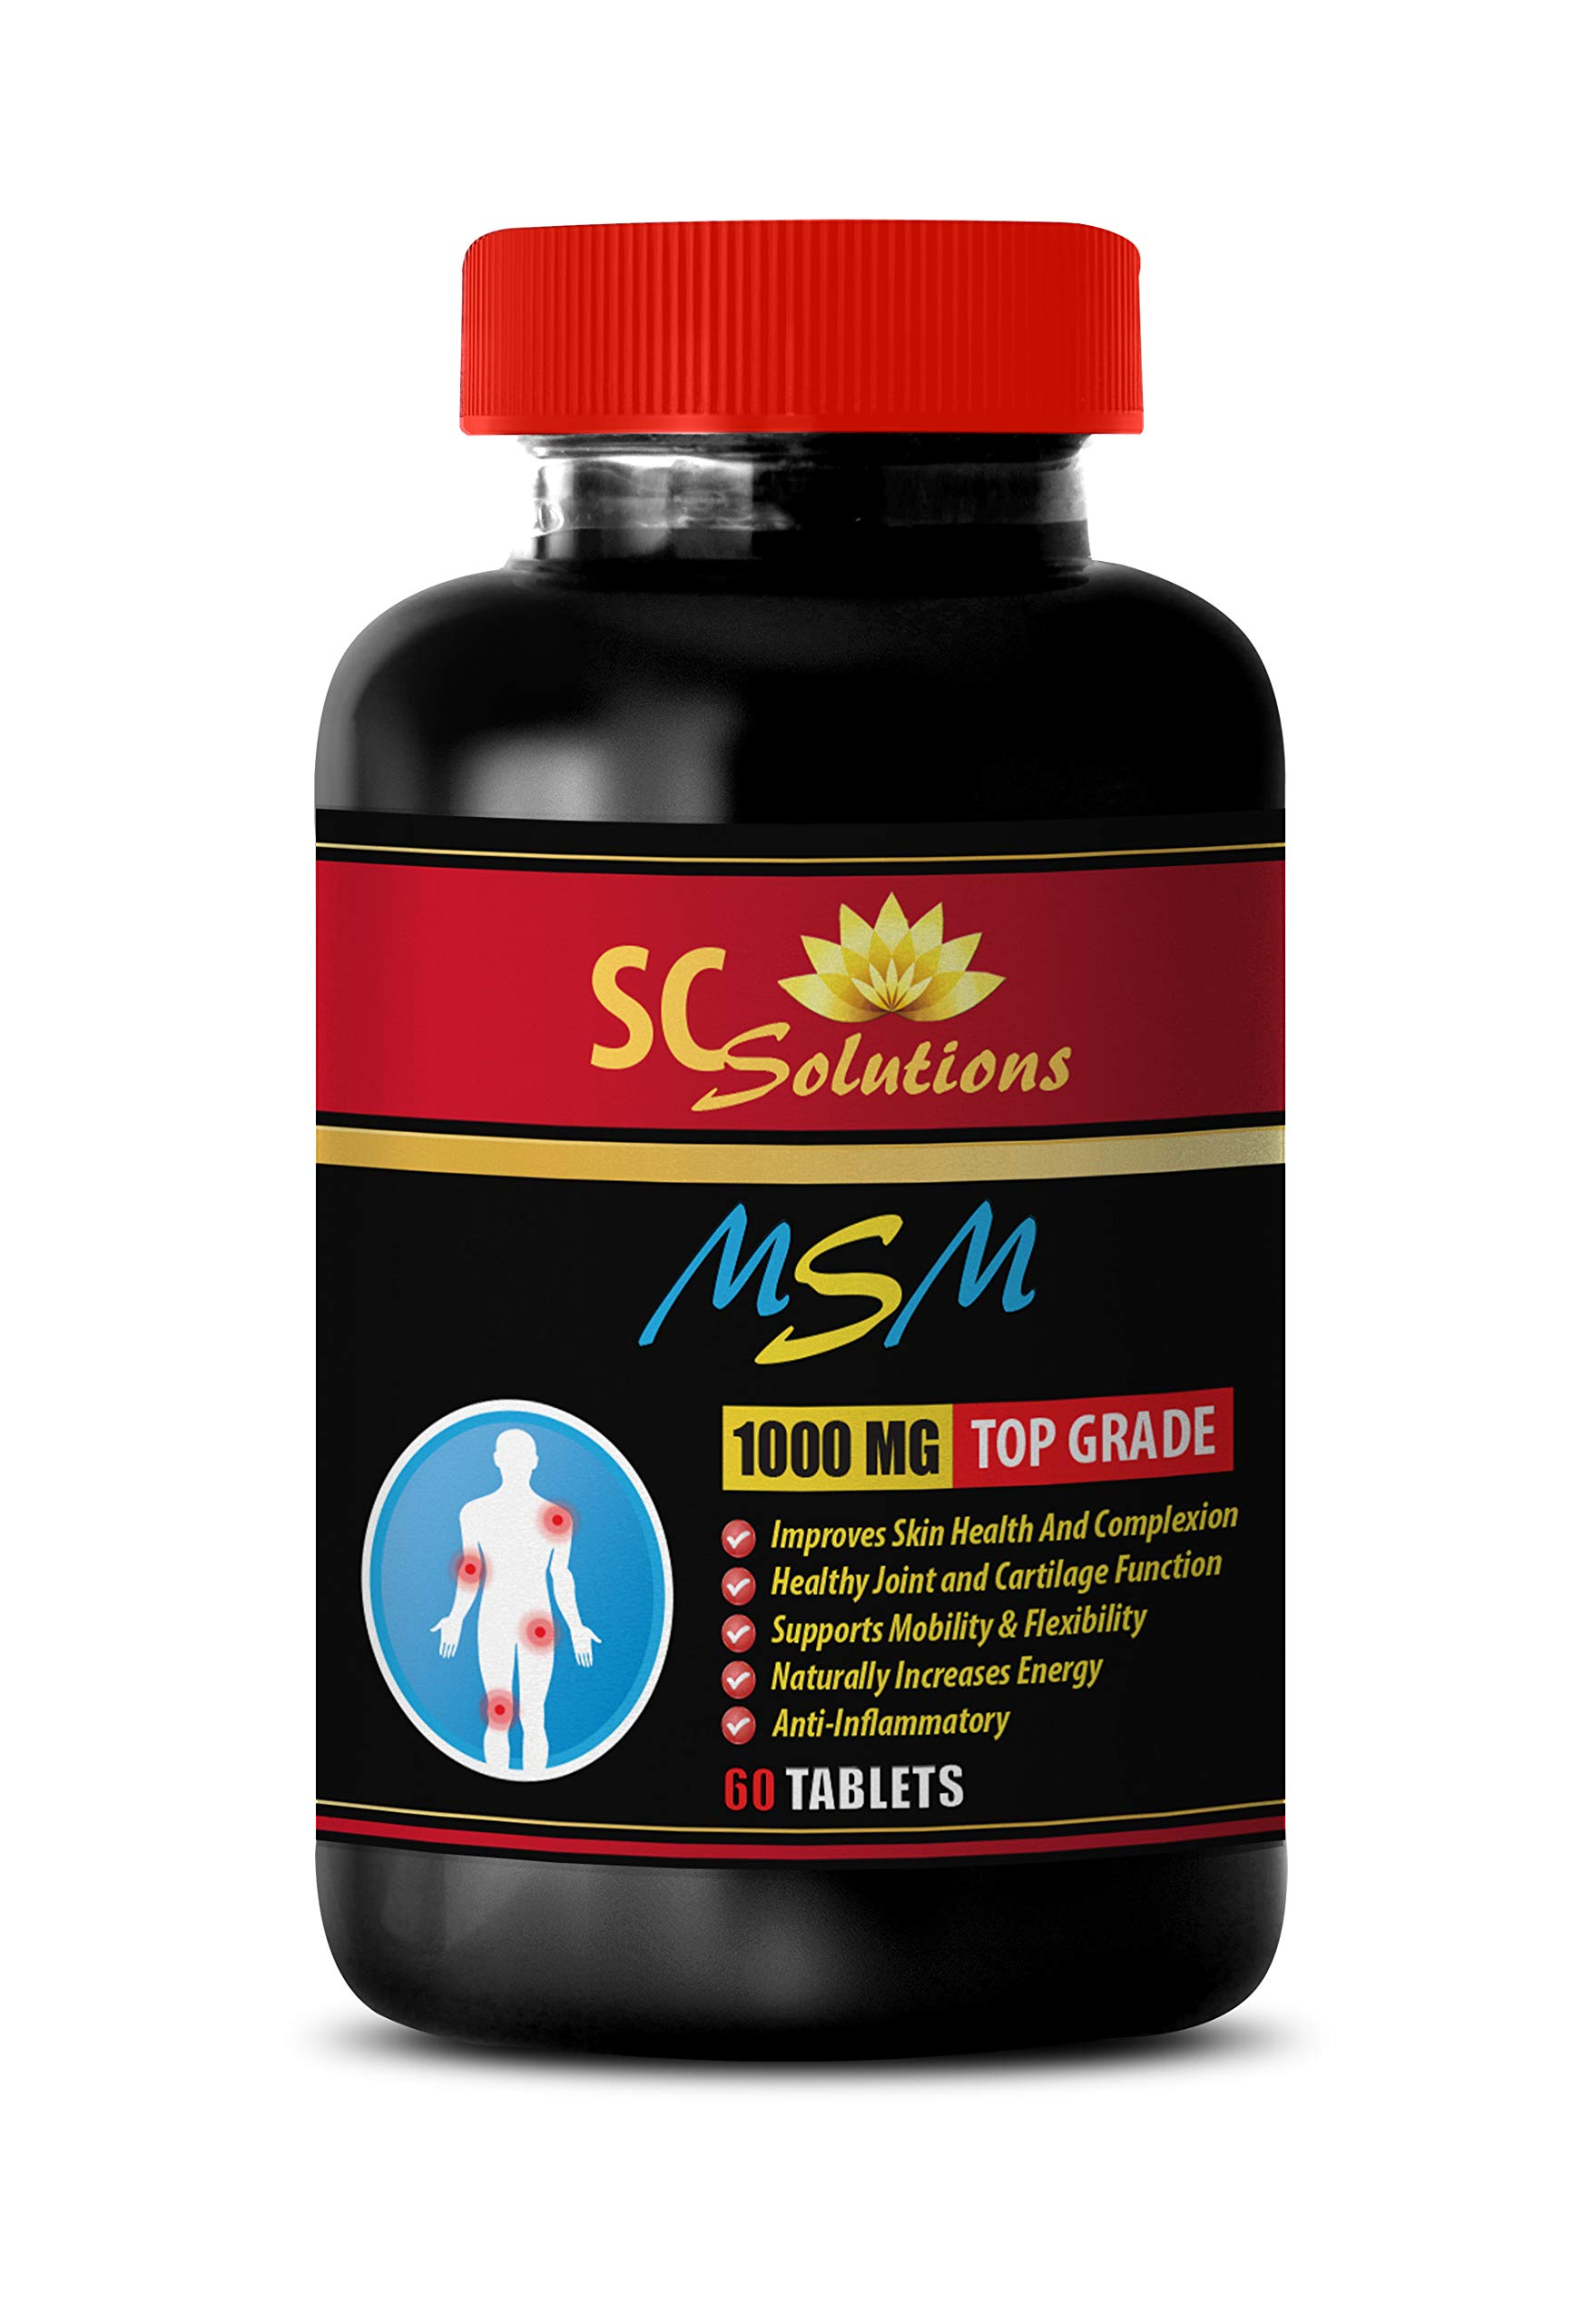 Joint Supplements with msm - MSM (Methylsulfonylmethane) - Msm Tablets 1000mg - 1 Bottle 60 Tablets by SKIN CARE SOLUTIONS